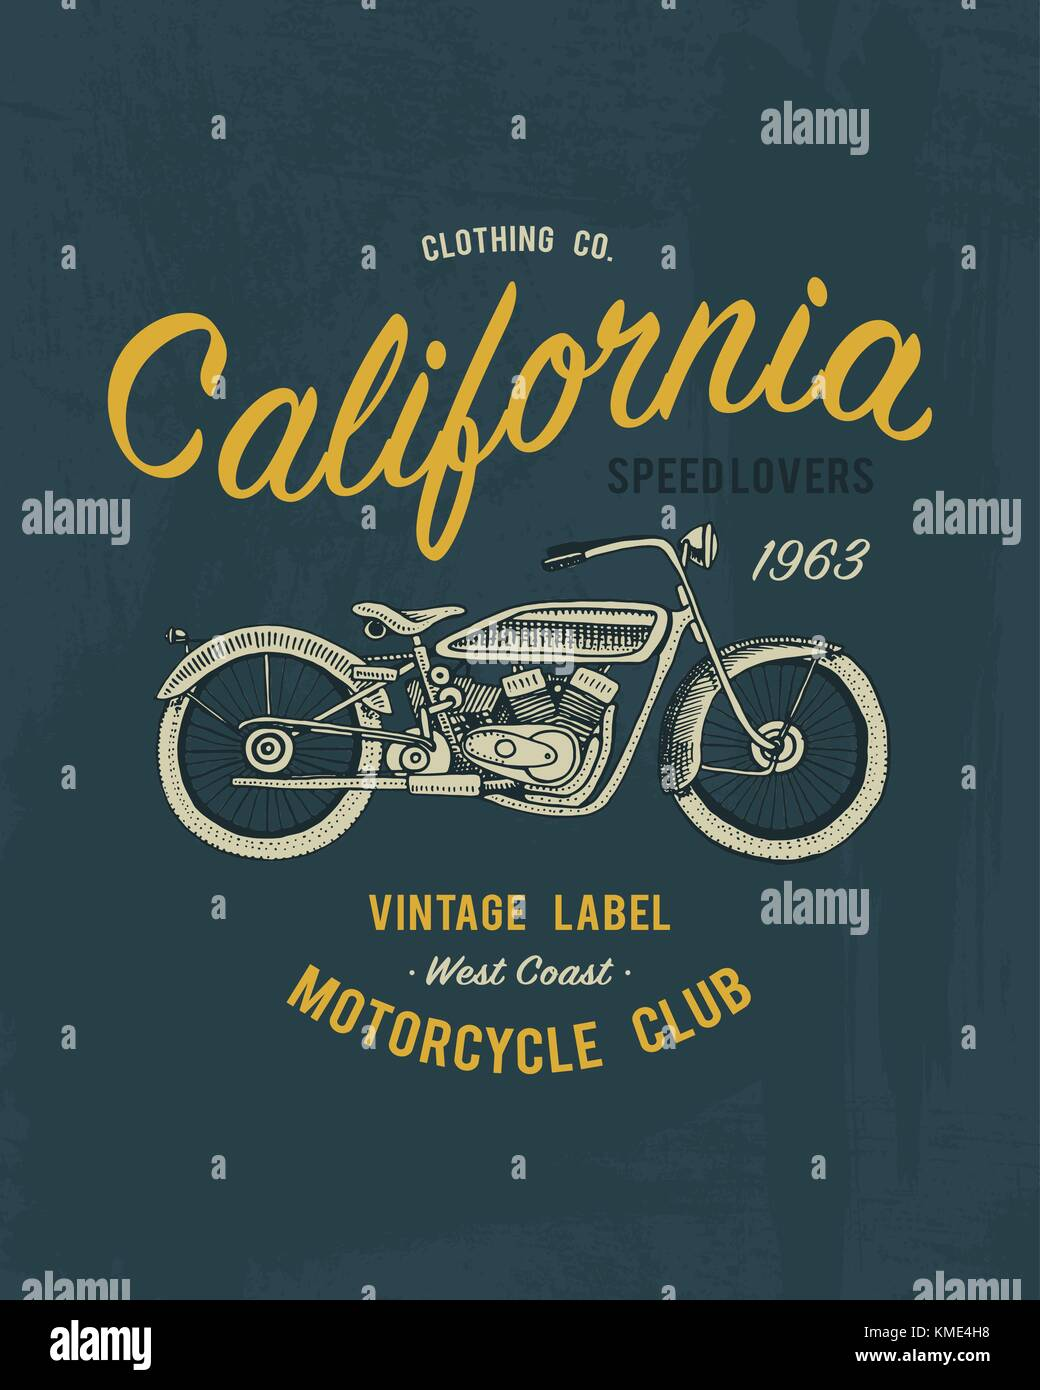 b057f773c tee print motorcycle or transport, t-shirt graphics, design with Animal.  Vector grunge background. vintage lettering and poster, print or banner.  america ...